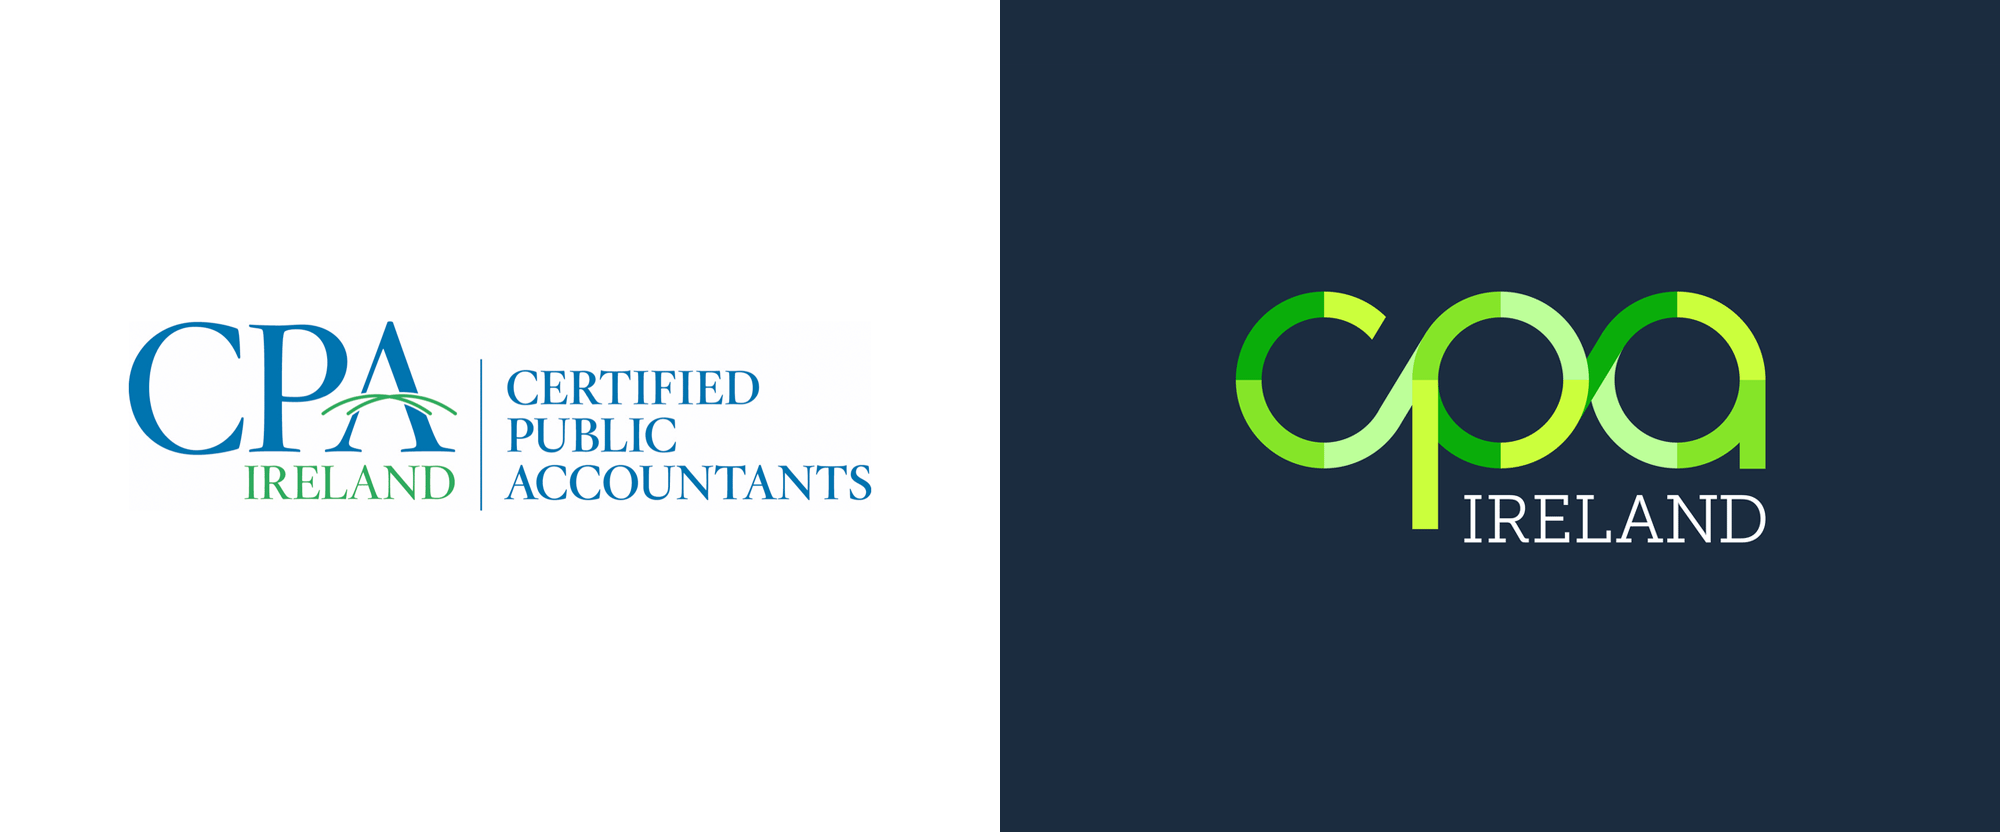 Brand New: New Logo and Identity for CPA Ireland by White Bear Studio.